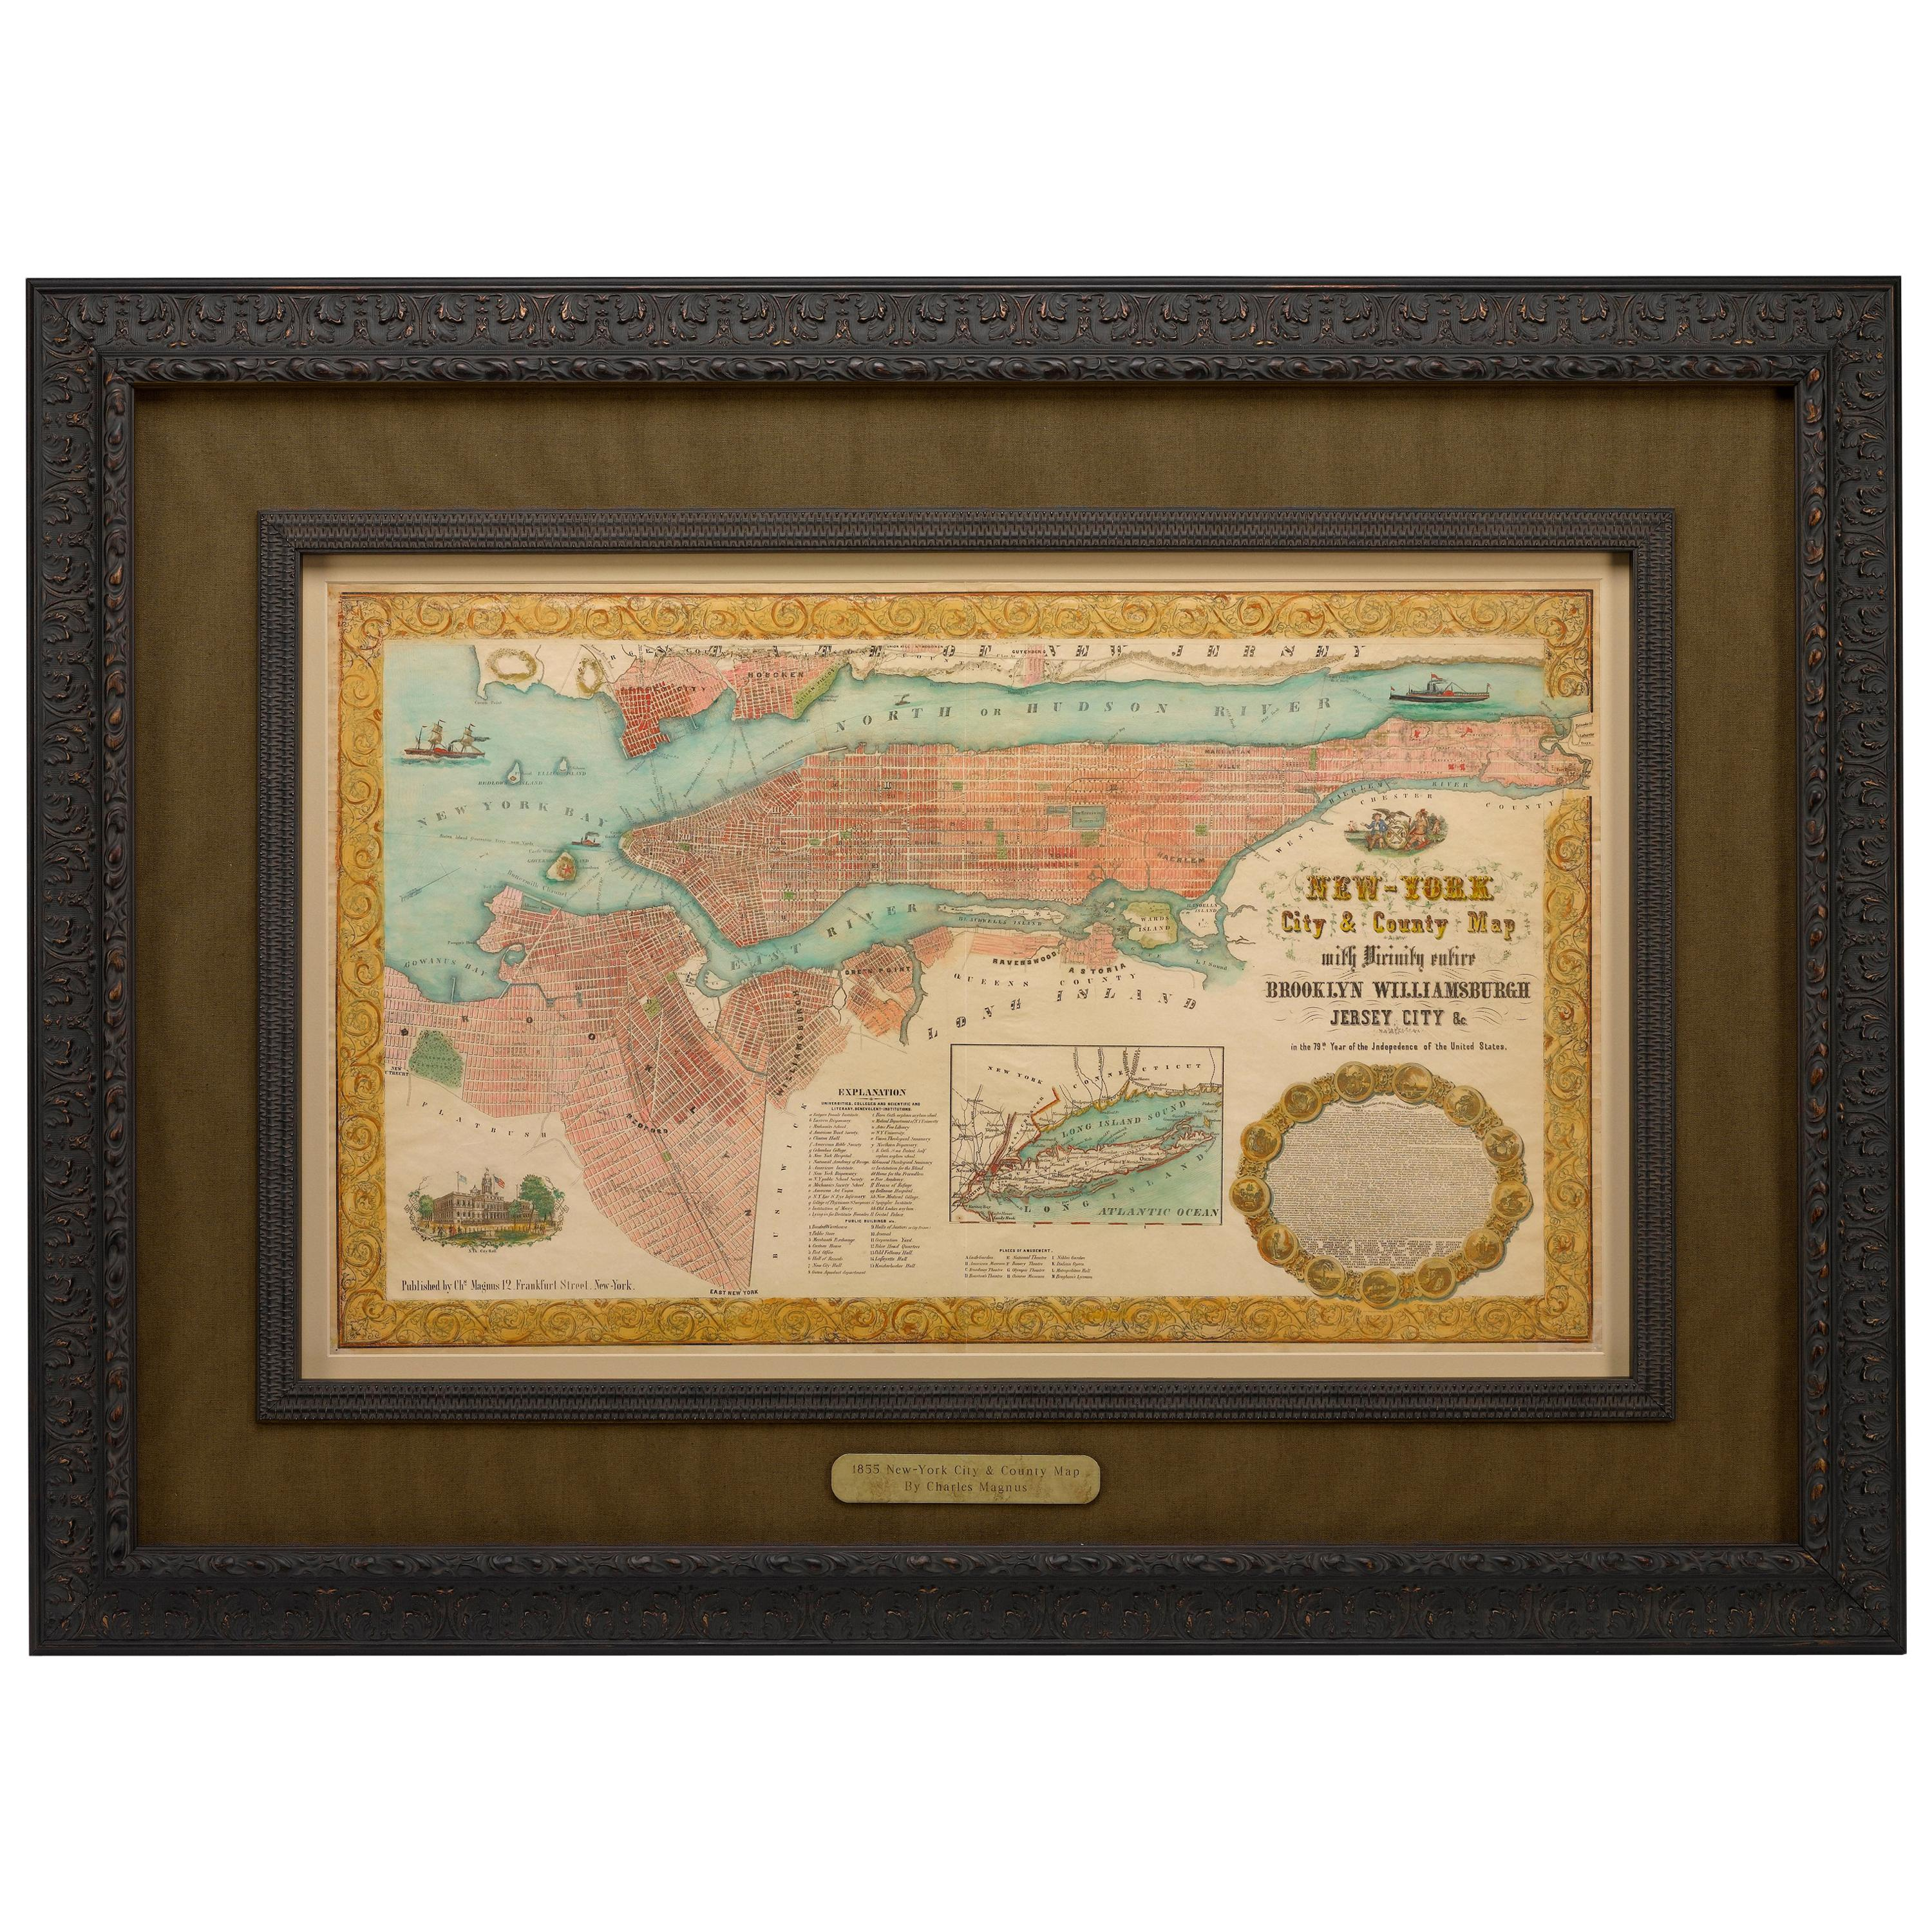 """Antique Map of """"New-York City & County"""" by Charles Magnus, 1855"""